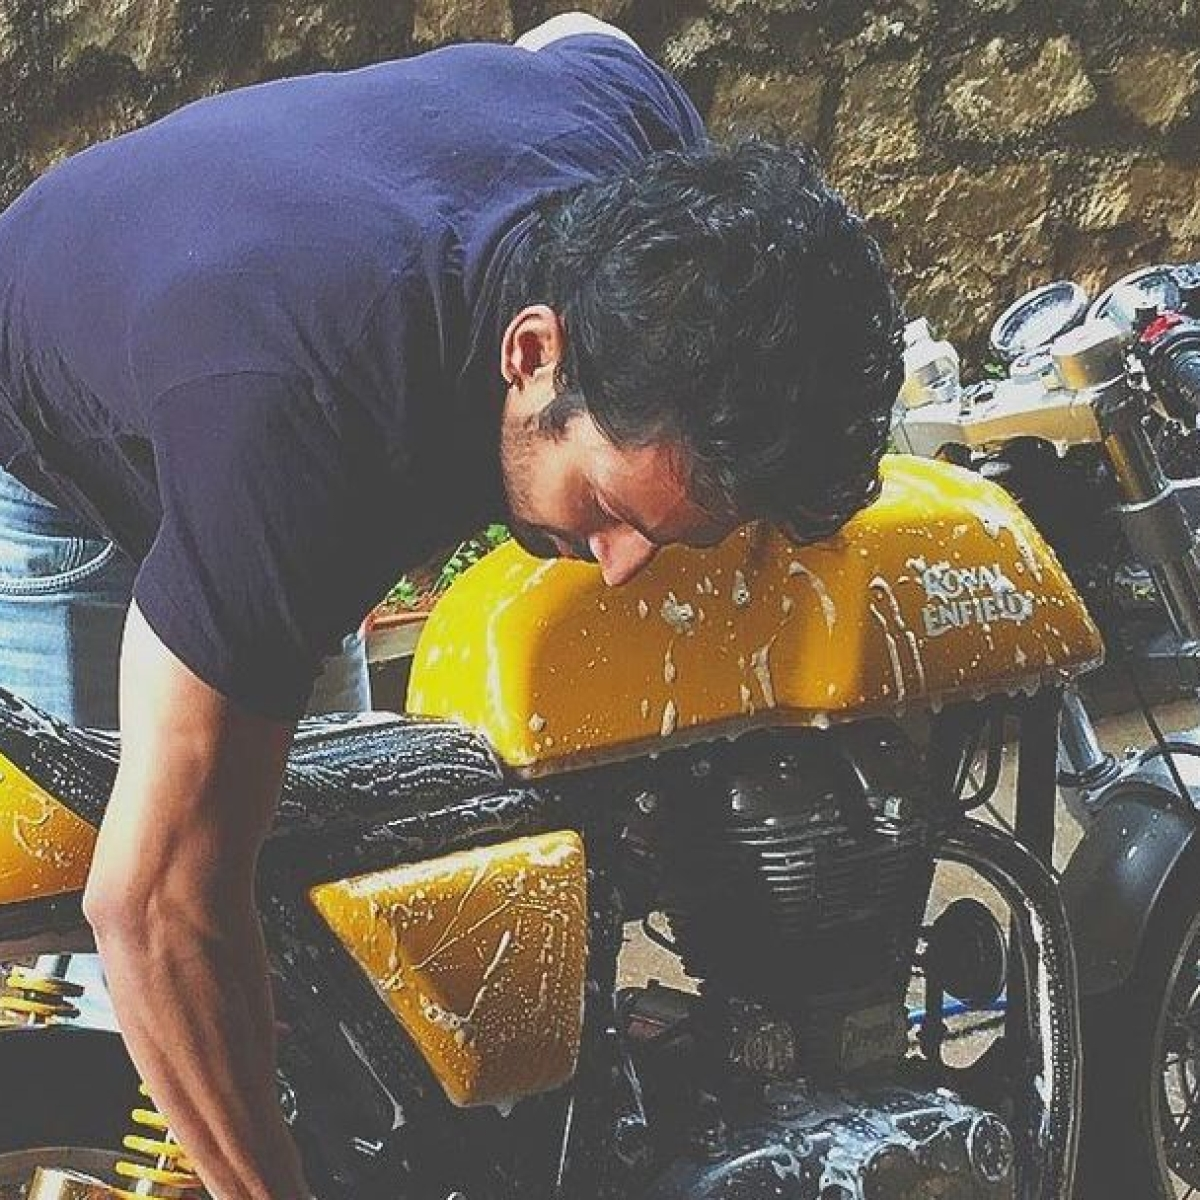 Harshvardhan Rane sells his bike to buy oxygen concentrators for the needy amid COVID-19 crisis